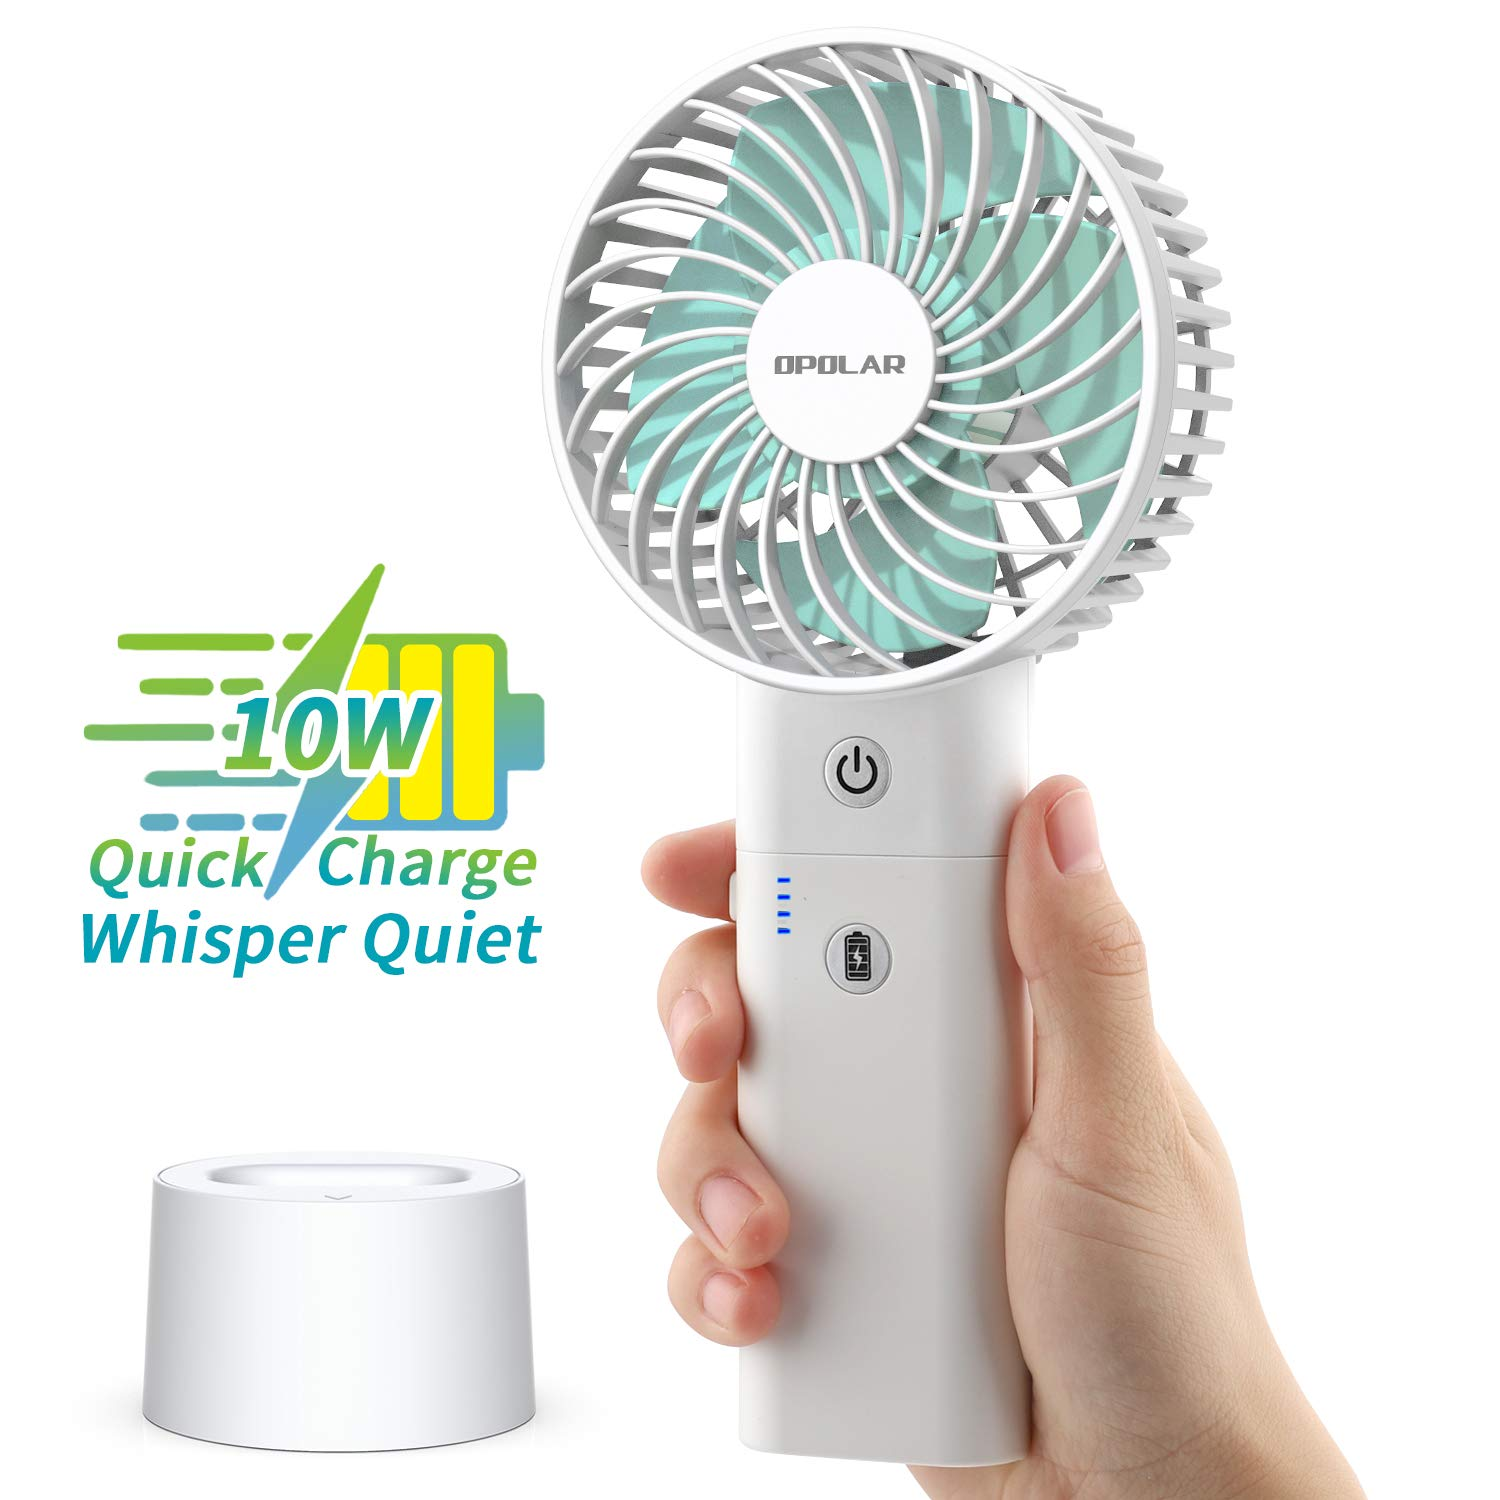 OPOLAR Battery Operated Handheld Personal Fan with Base, 10W Quick Charge Small Portable Fan with 5000mAh Battery, 5-18H Work Time, Strong Airflow,3 Speed Quiet Fan for Tropical Countries Travel